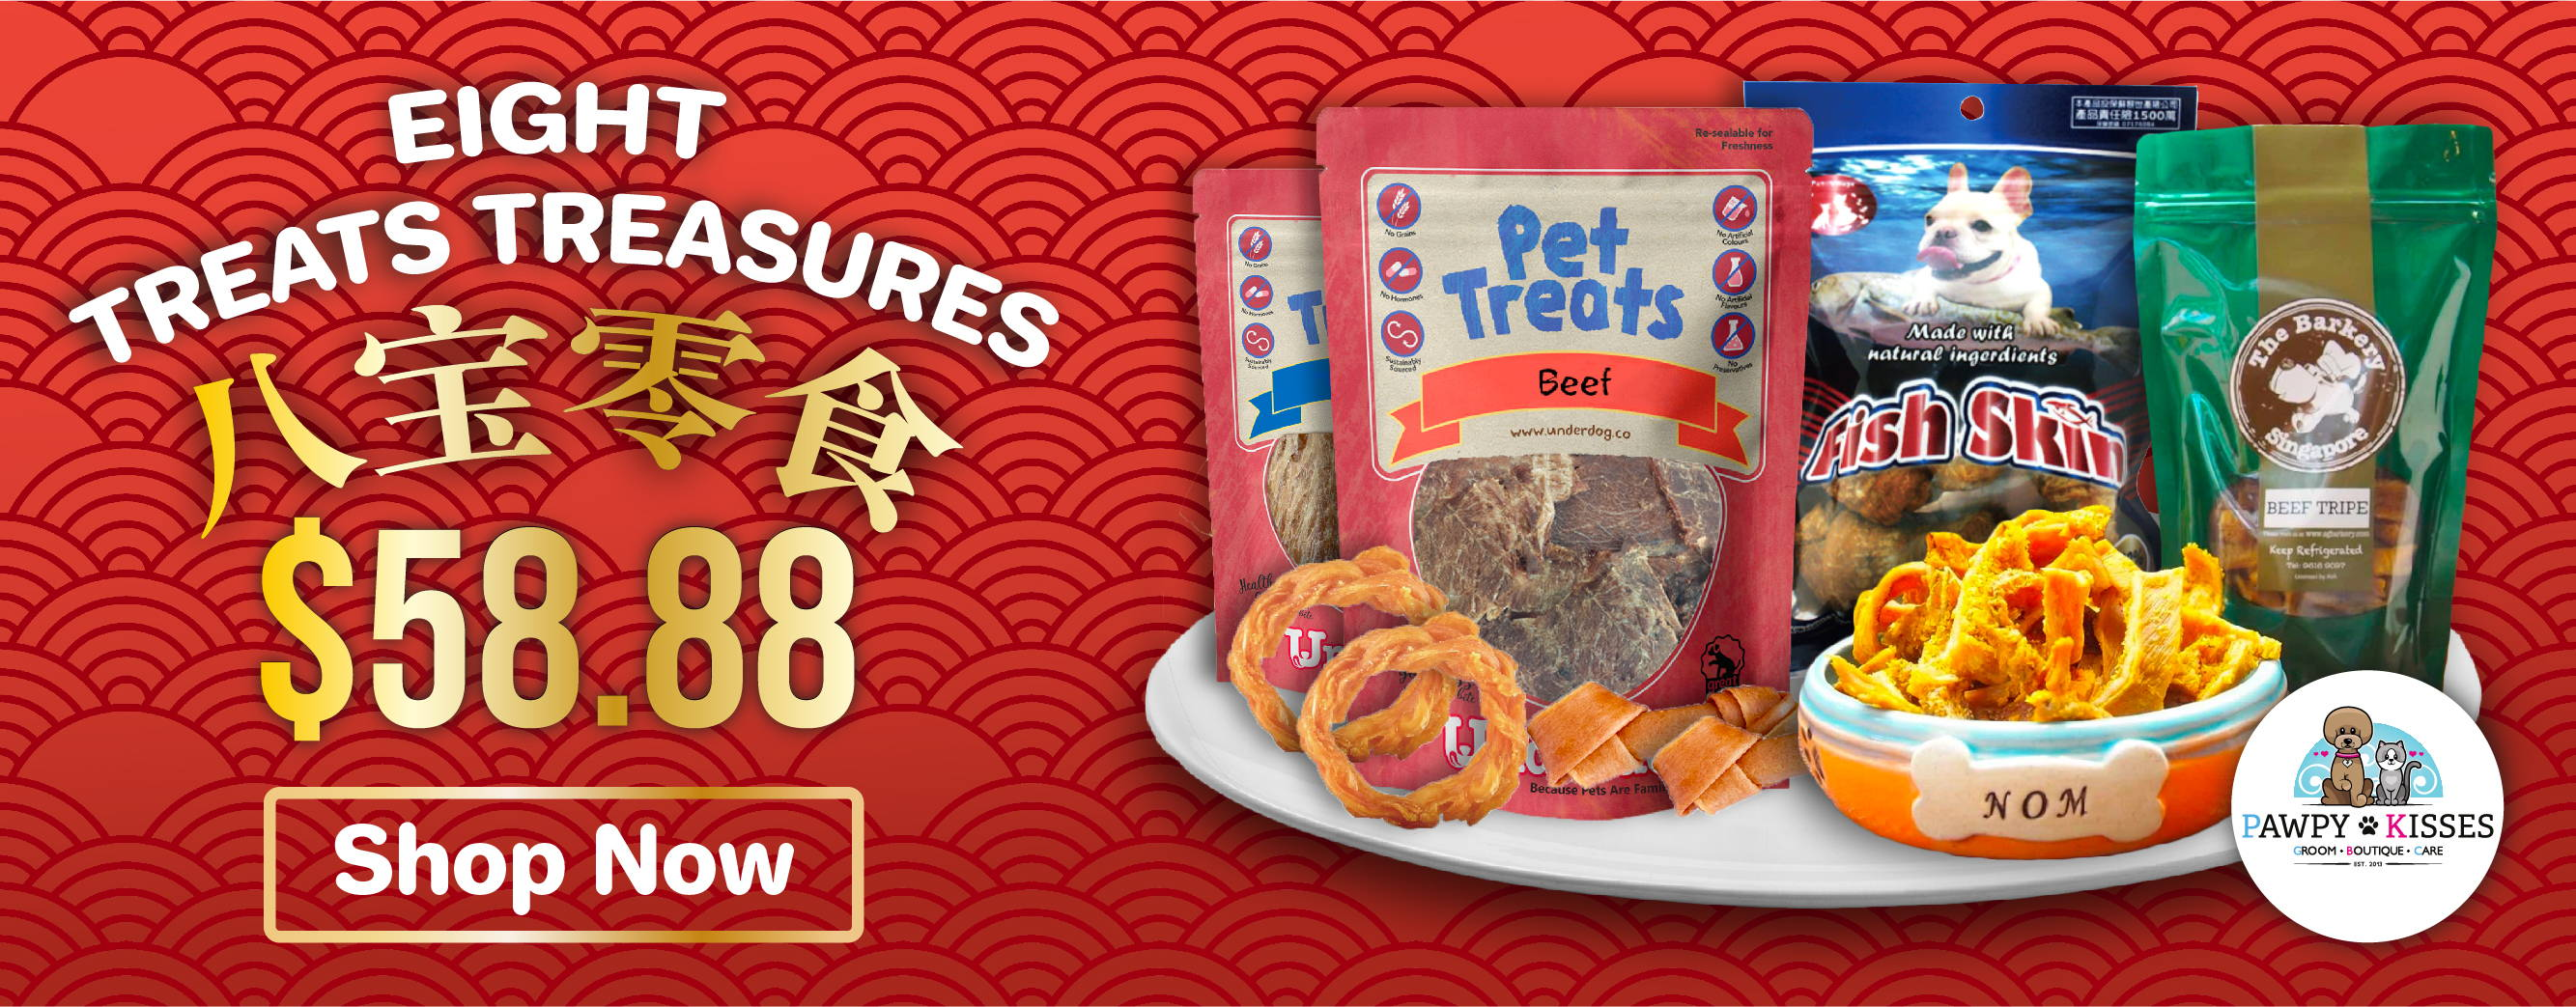 Pawpy Kisses Chinese New Year The Eight Treats Treasures Online Pet Shop Singapore Papy Kisses banner.